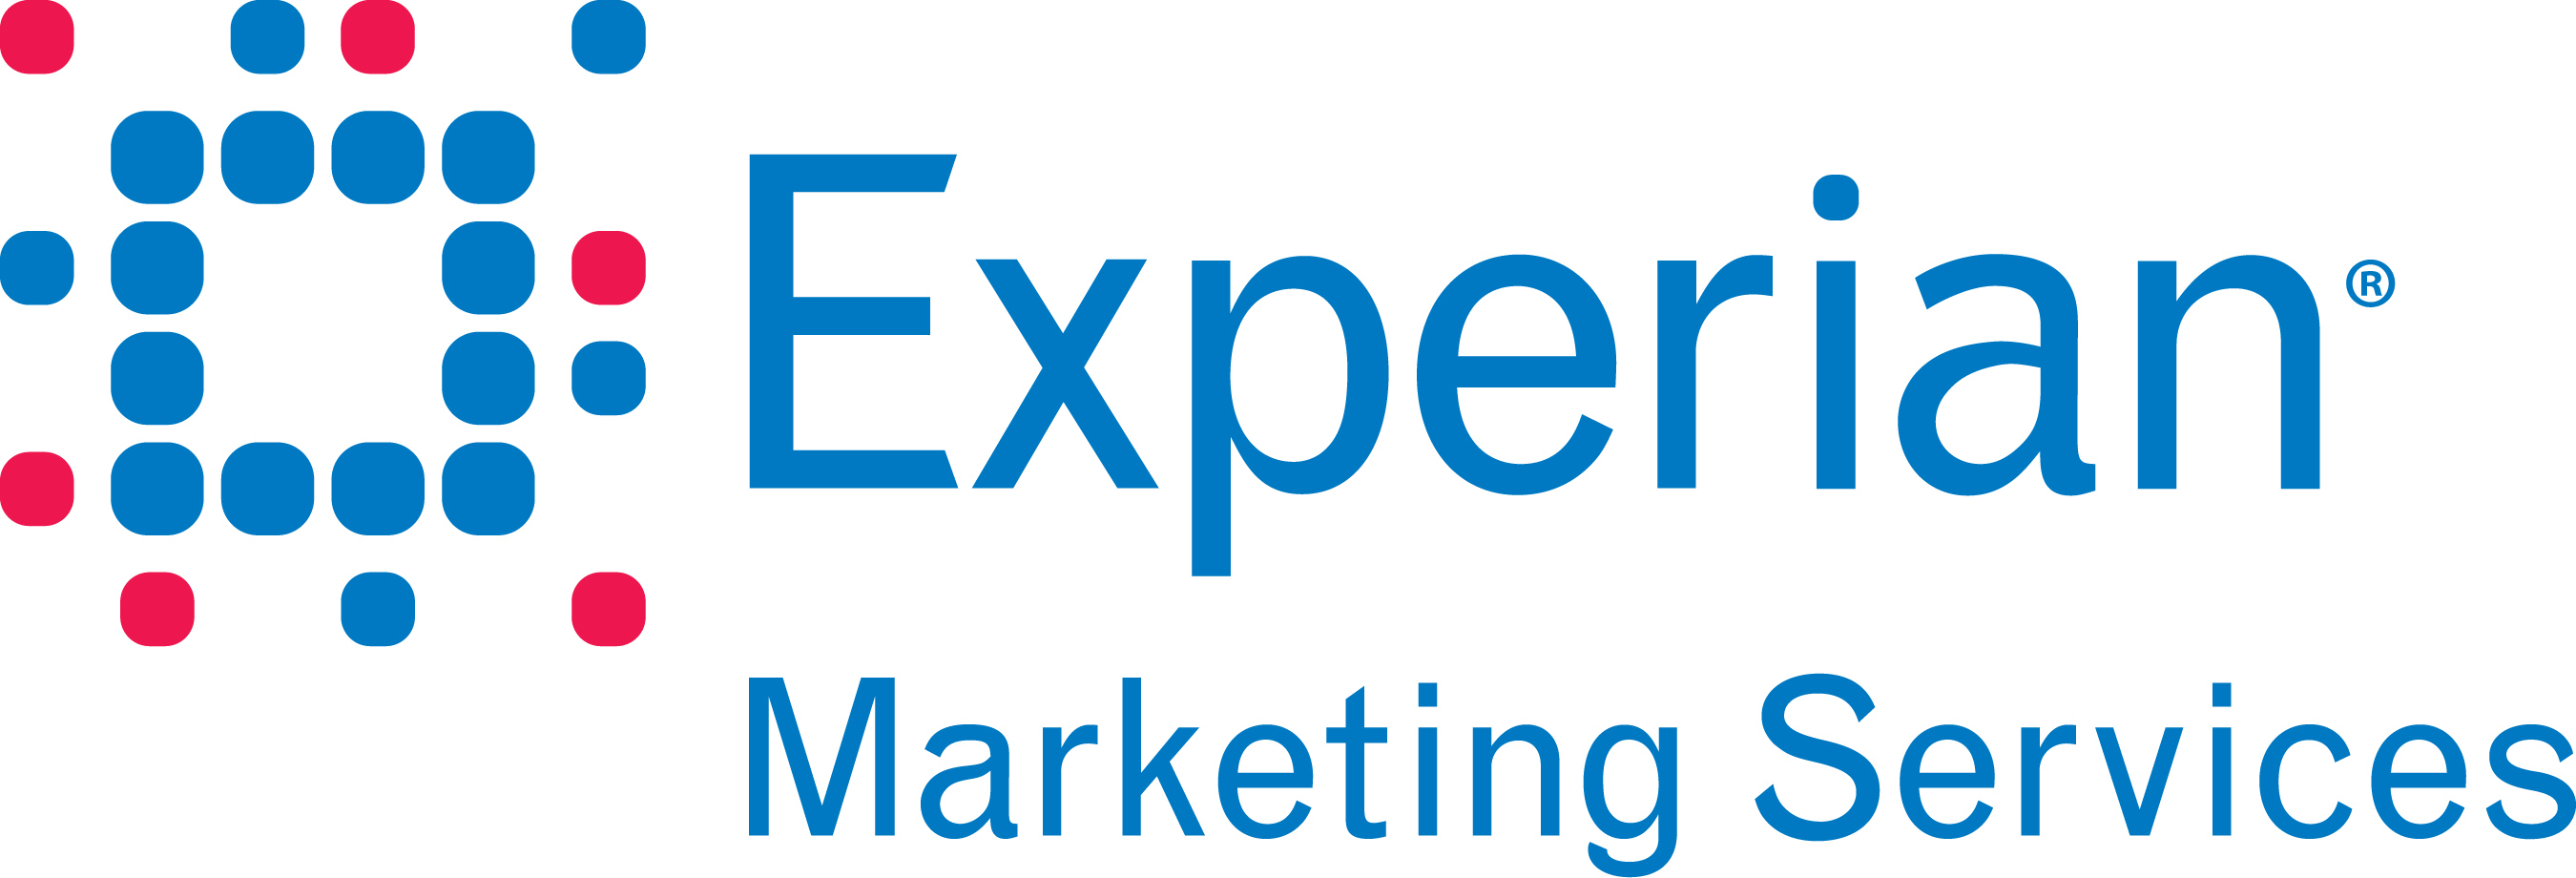 Experian Marketing Services.